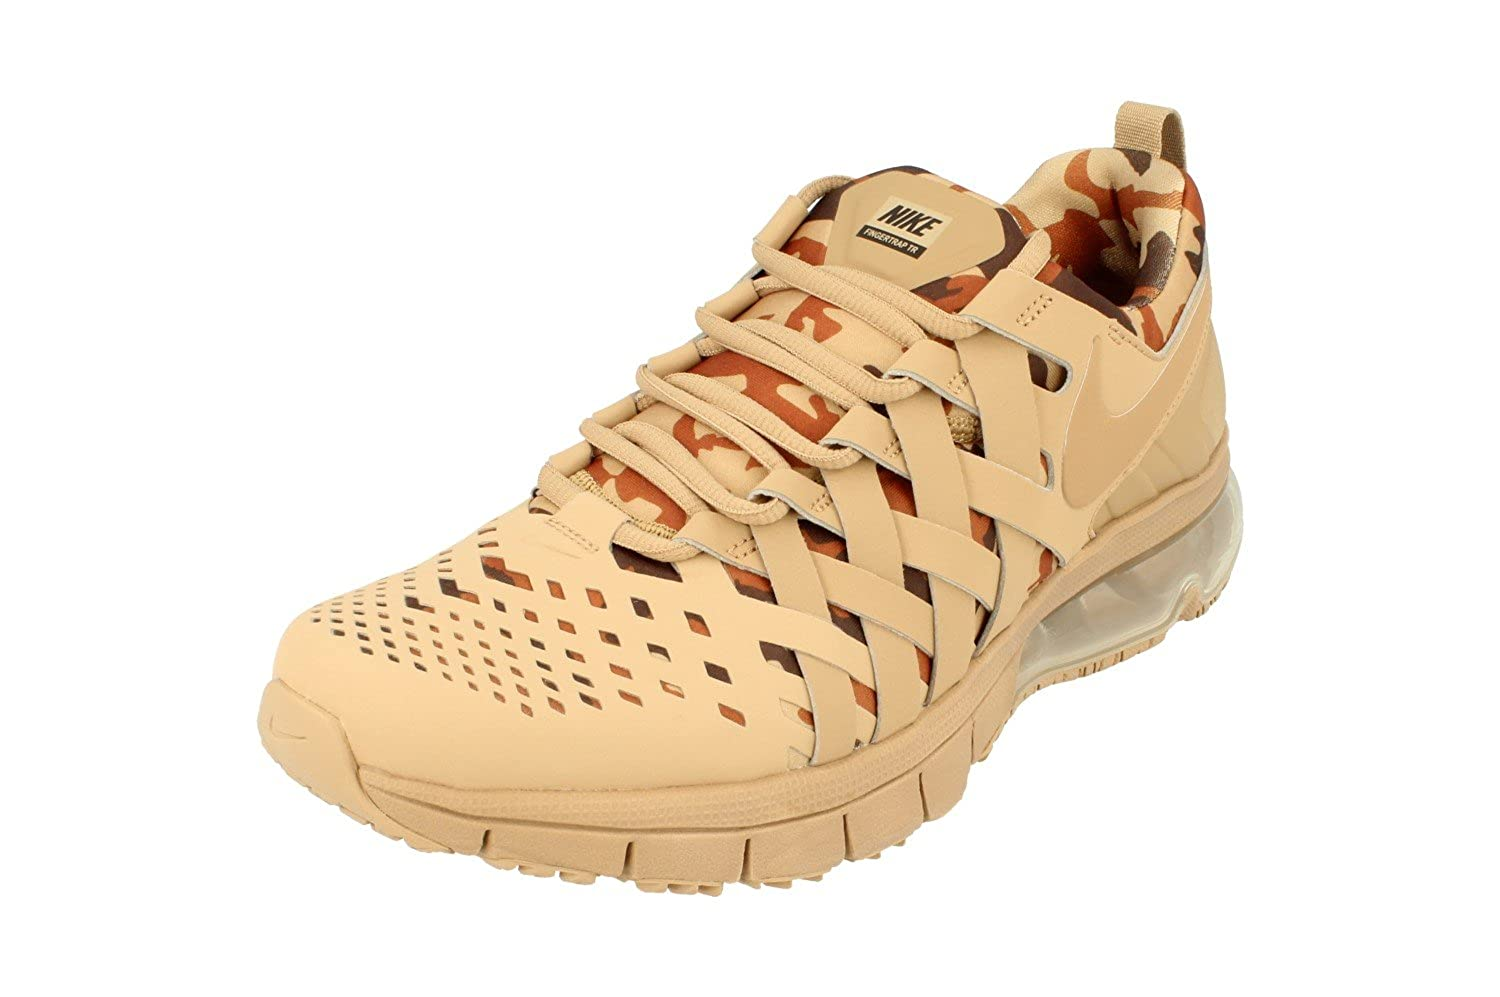 Nike Fingertrap Max AMP Mens Running Trainers 644672 Sneakers Shoes